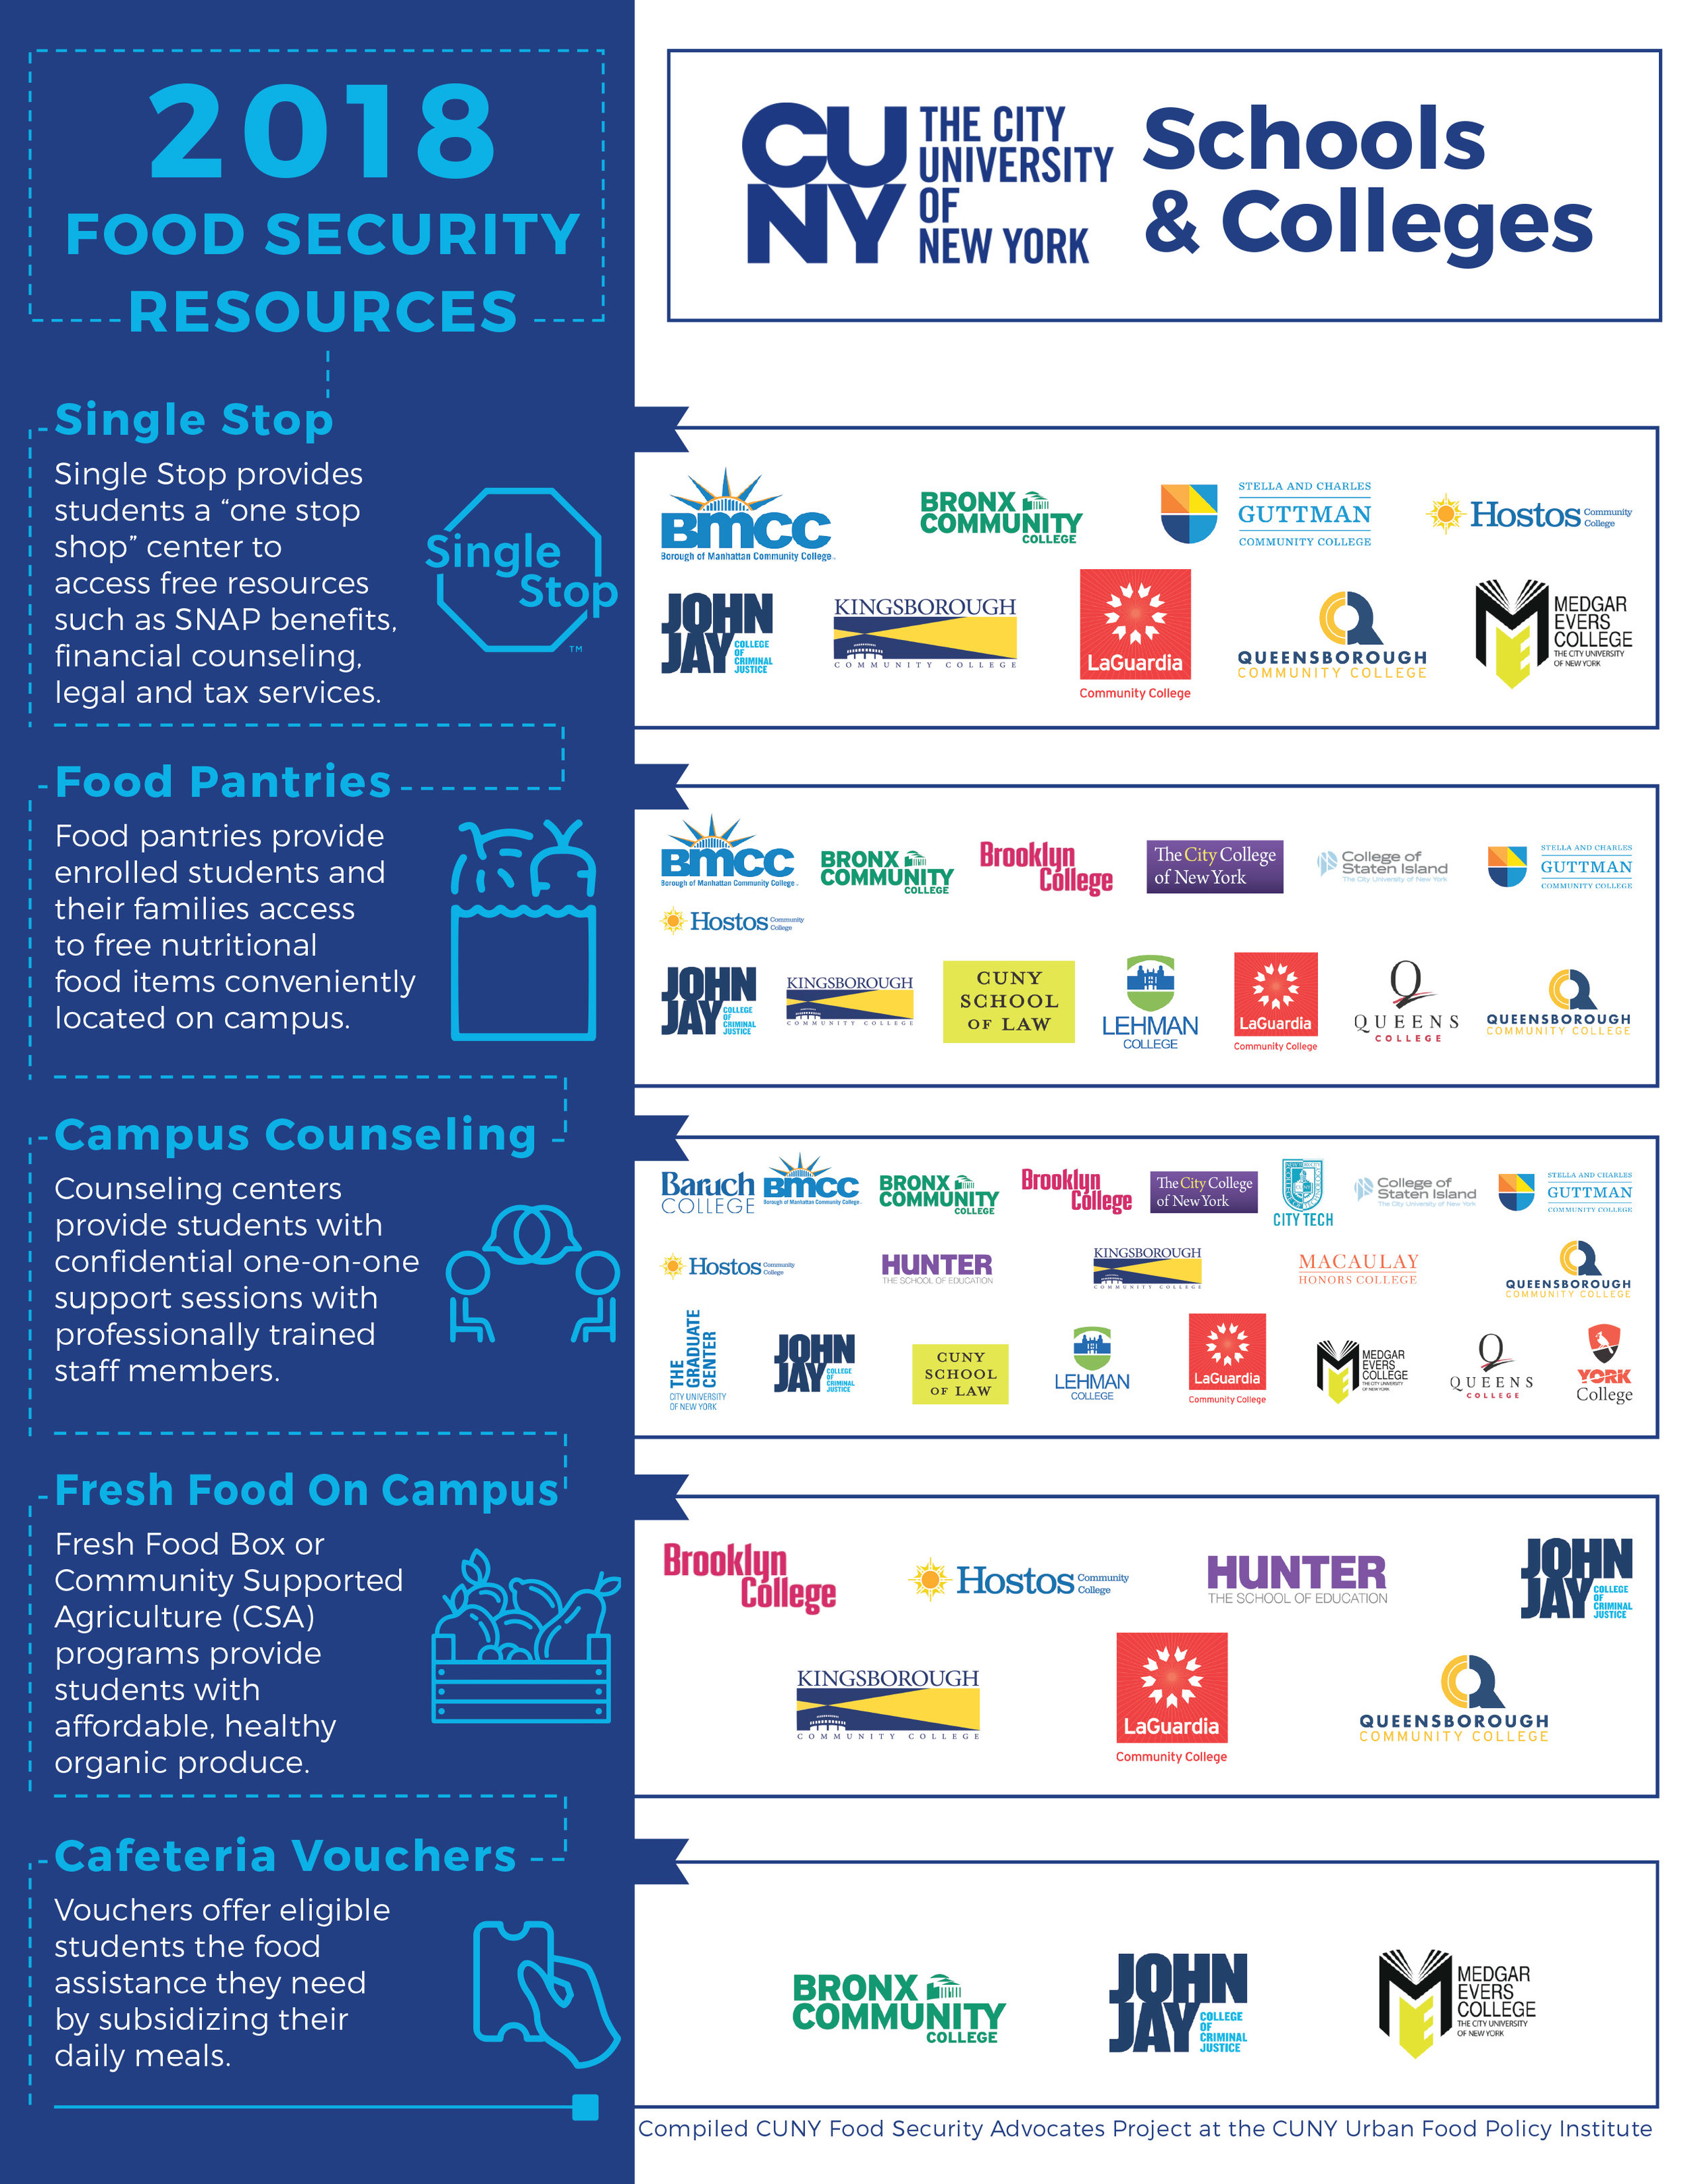 2018 CUNY Food Security Resources